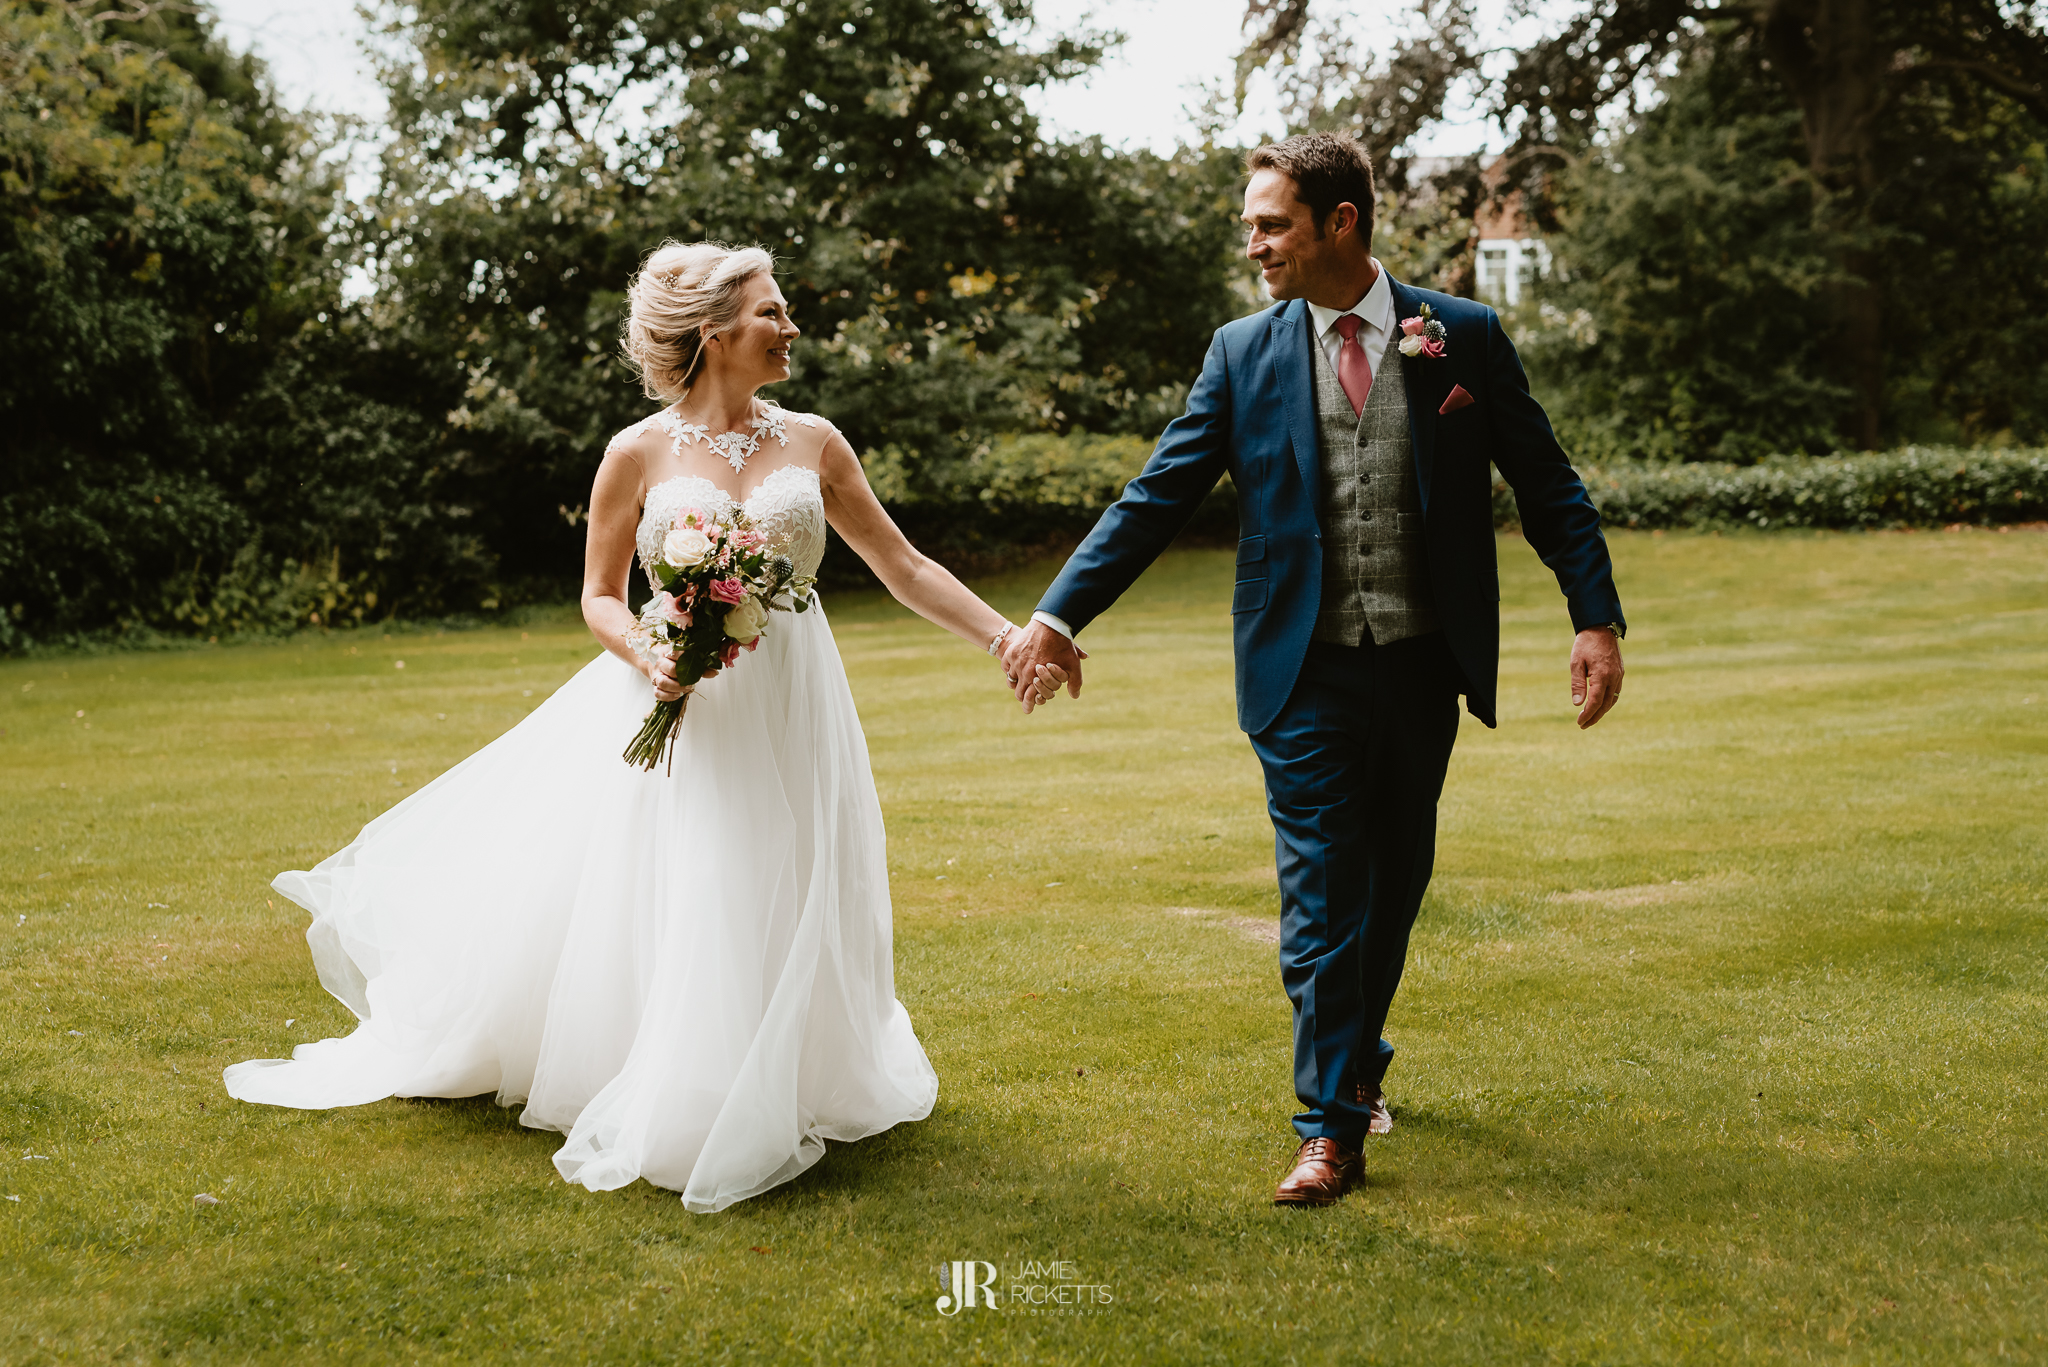 Wroxeter-Hotel-Wedding-Photography-In-Shropshire-By-Shropshire-Wedding-Photographer-Jamie-Ricketts-111.JPG